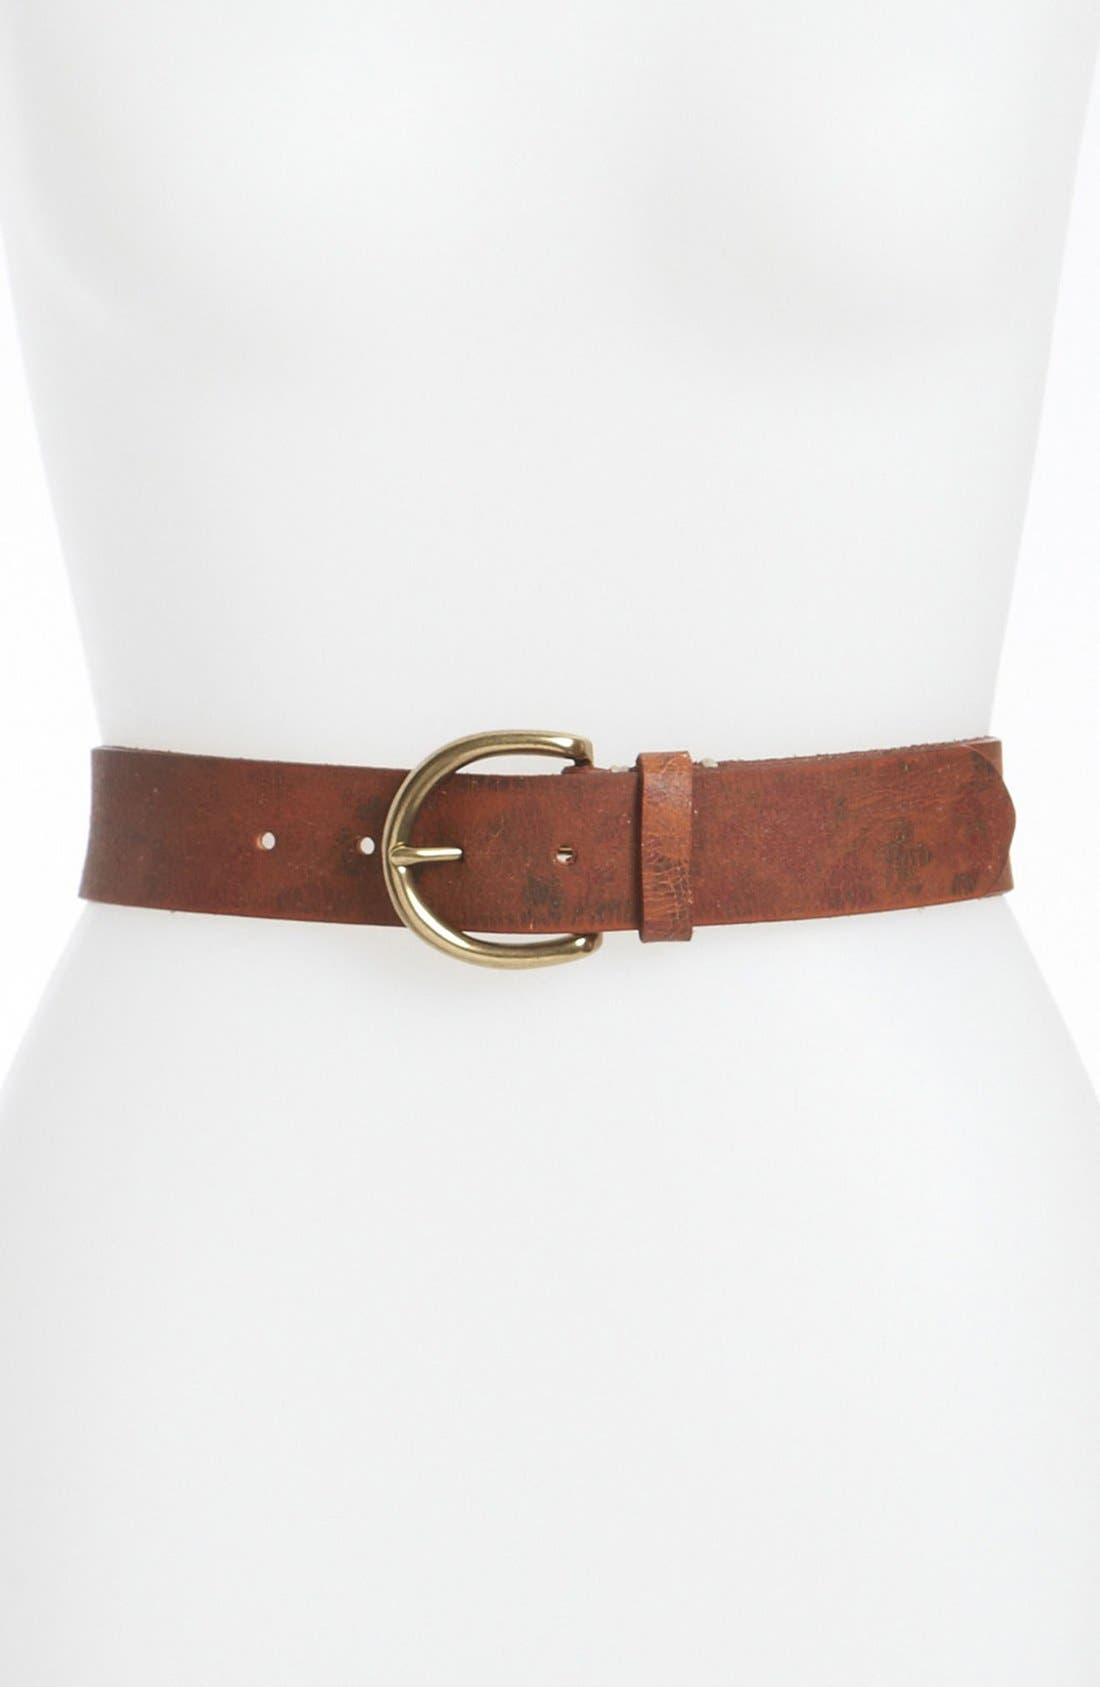 Main Image - Fina Firenze Belts 'Floral Foiled Denim' Leather Belt